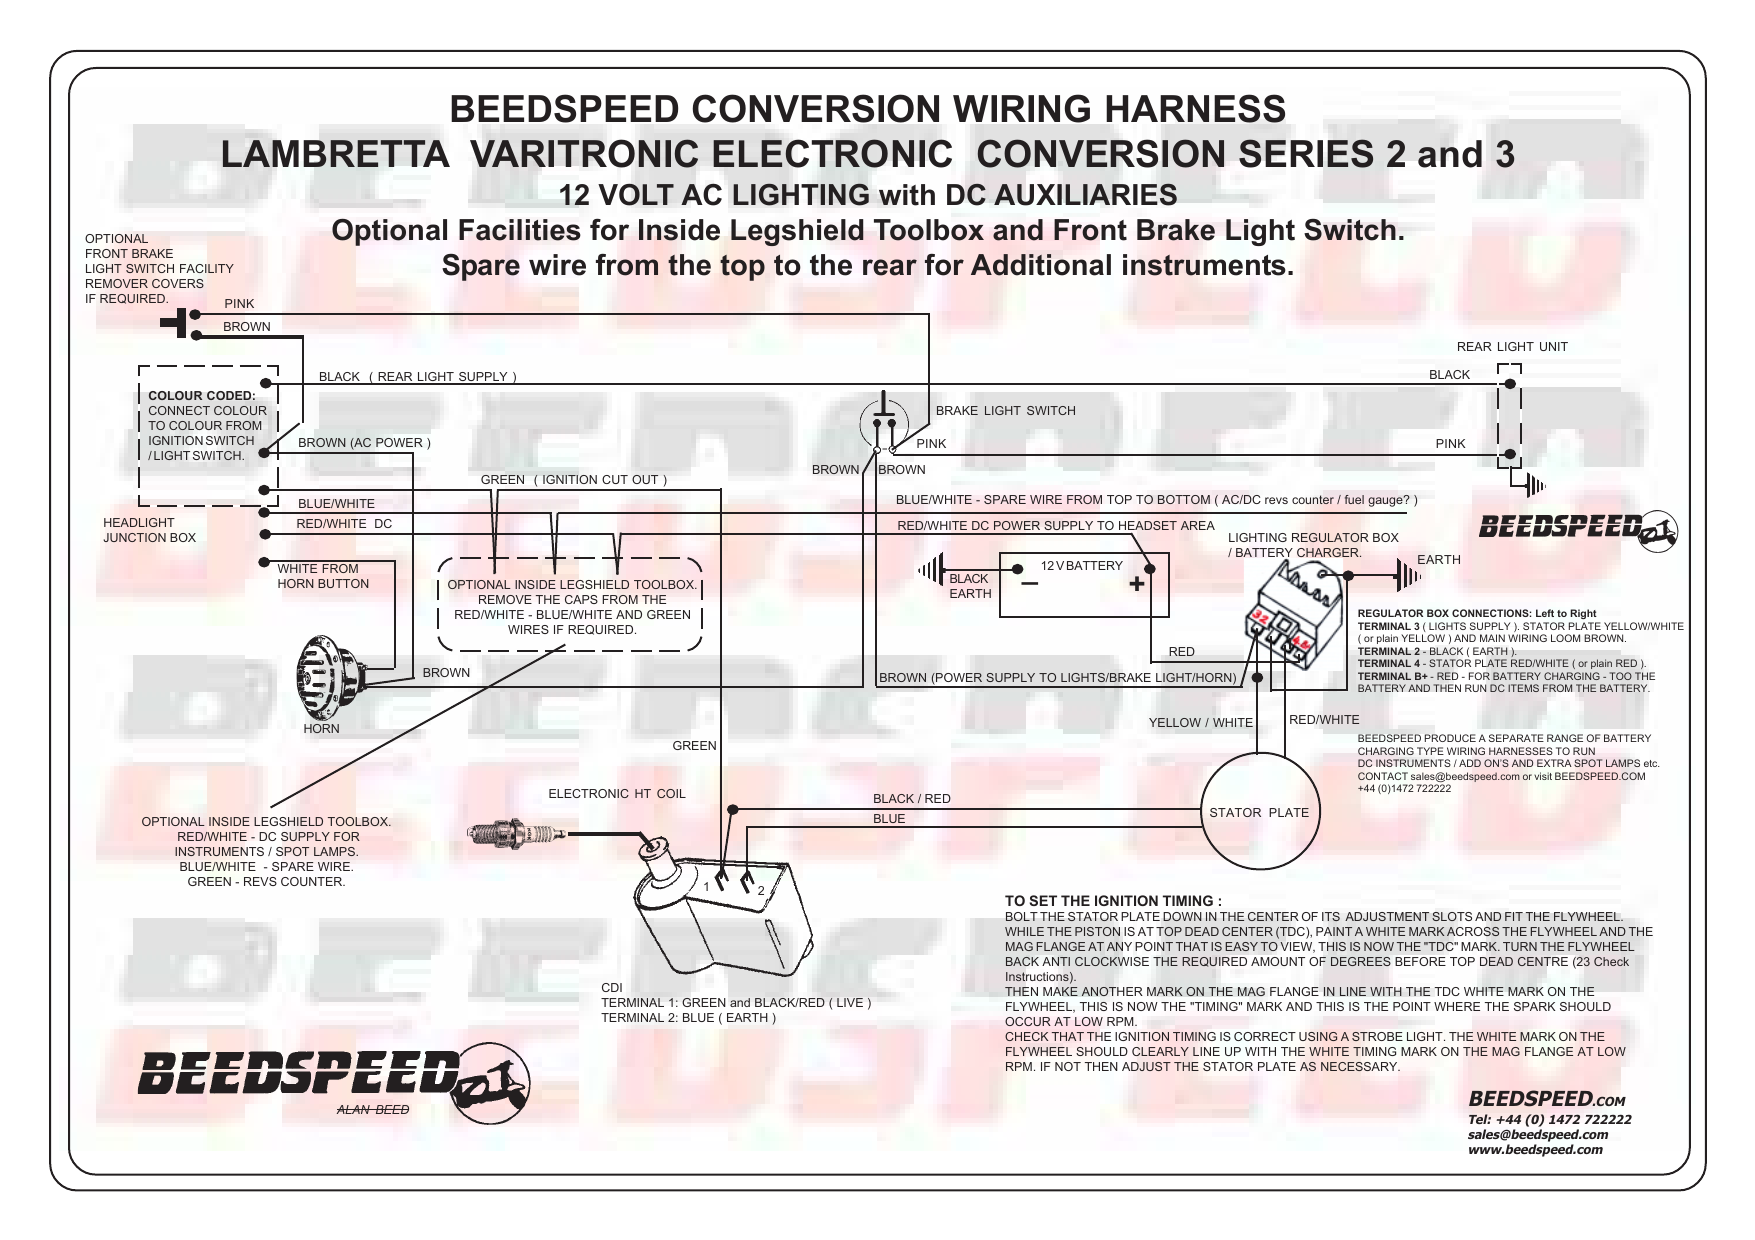 018556260_1 b4df7bce7d31e77b7a555d210f5450ac beedspeed conversion wiring harness lambretta lambretta headset wiring diagram at aneh.co